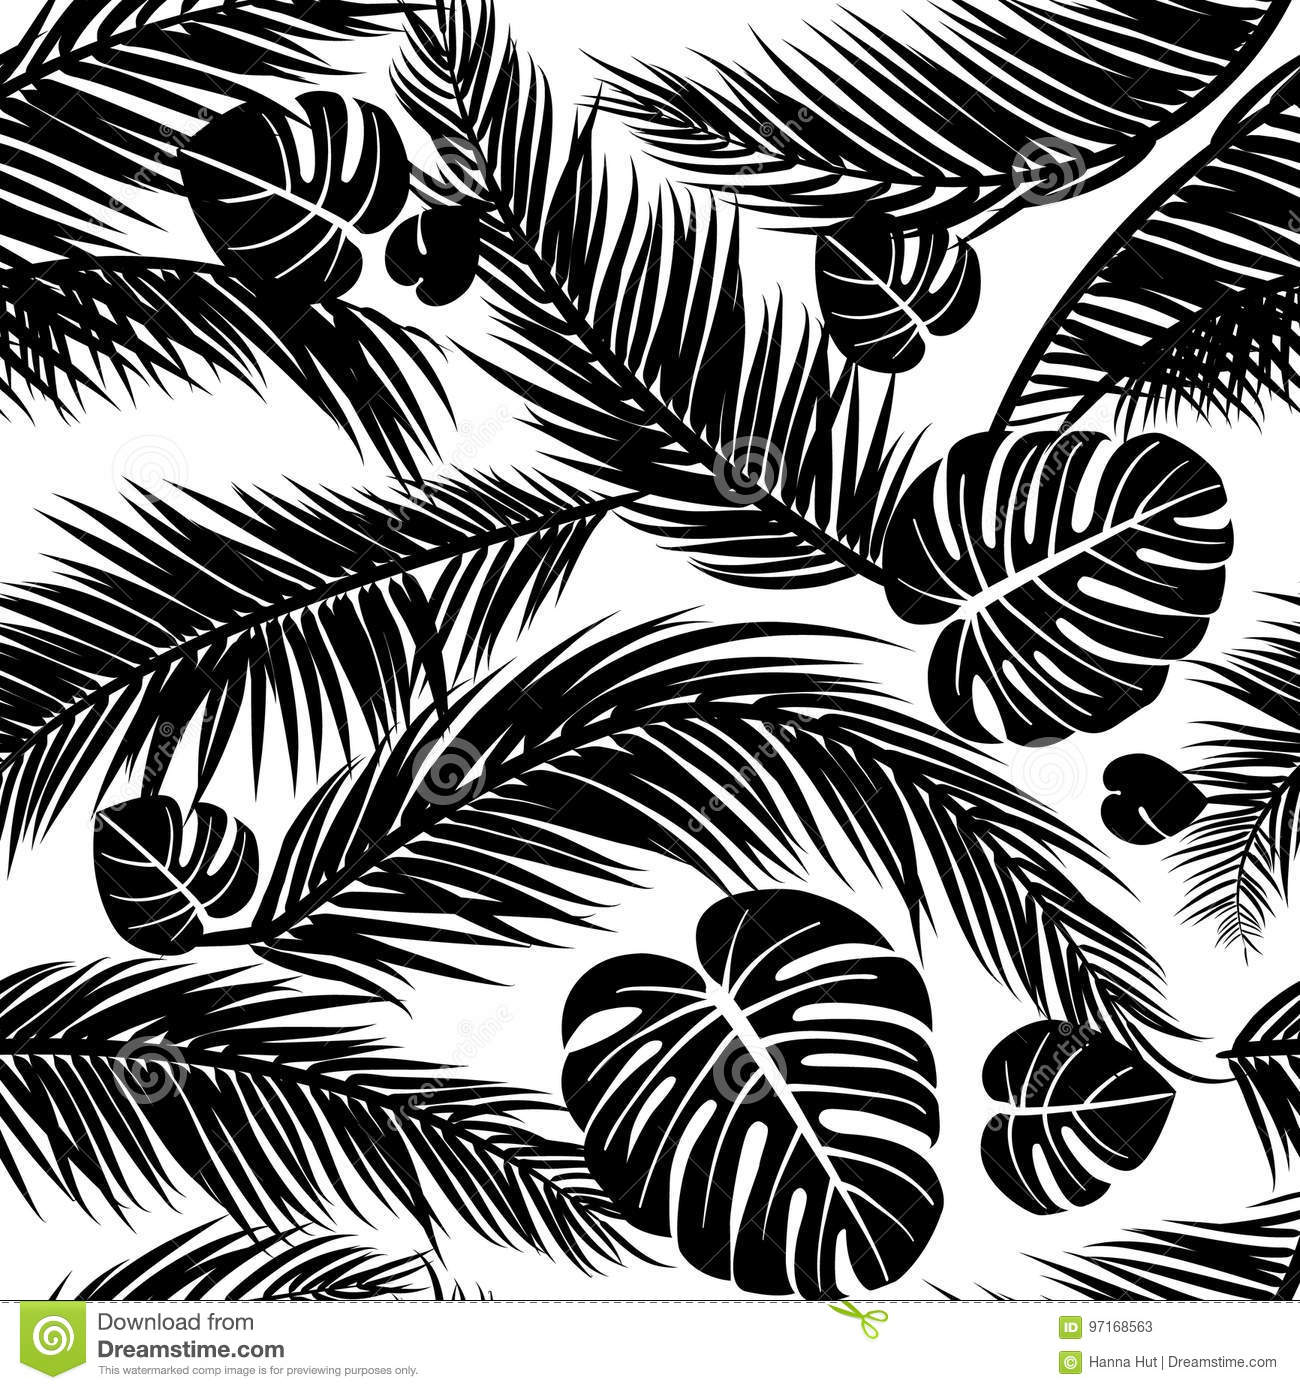 Seamless Pattern With Silhouettes Of Palm Tree Leaves In Black On